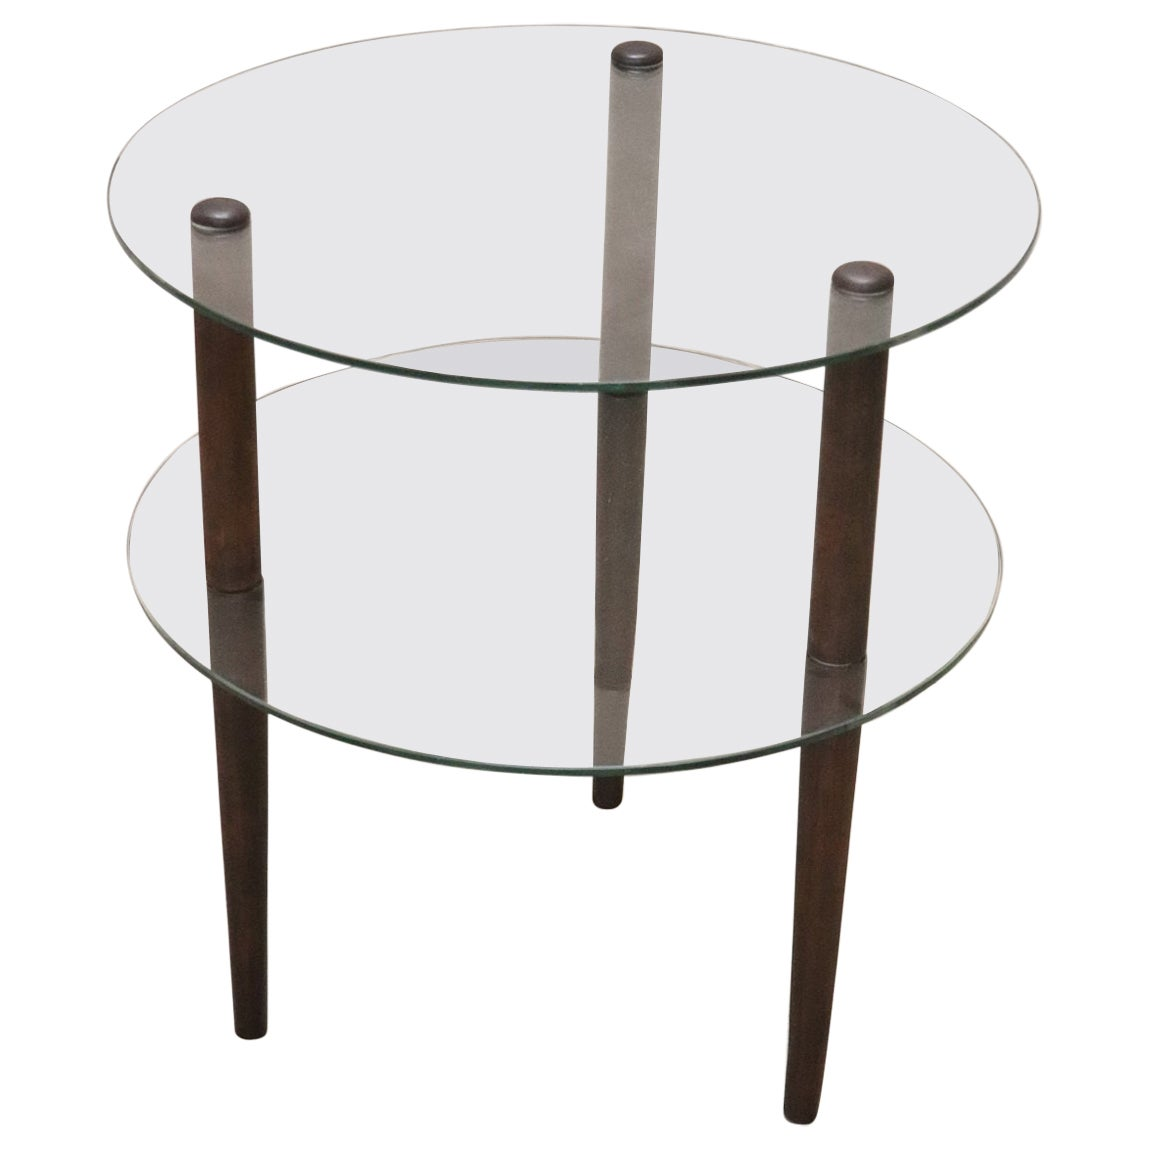 20th Century Italian Design Coffee Table or Side Table by Enrico Paulucci, 1960s